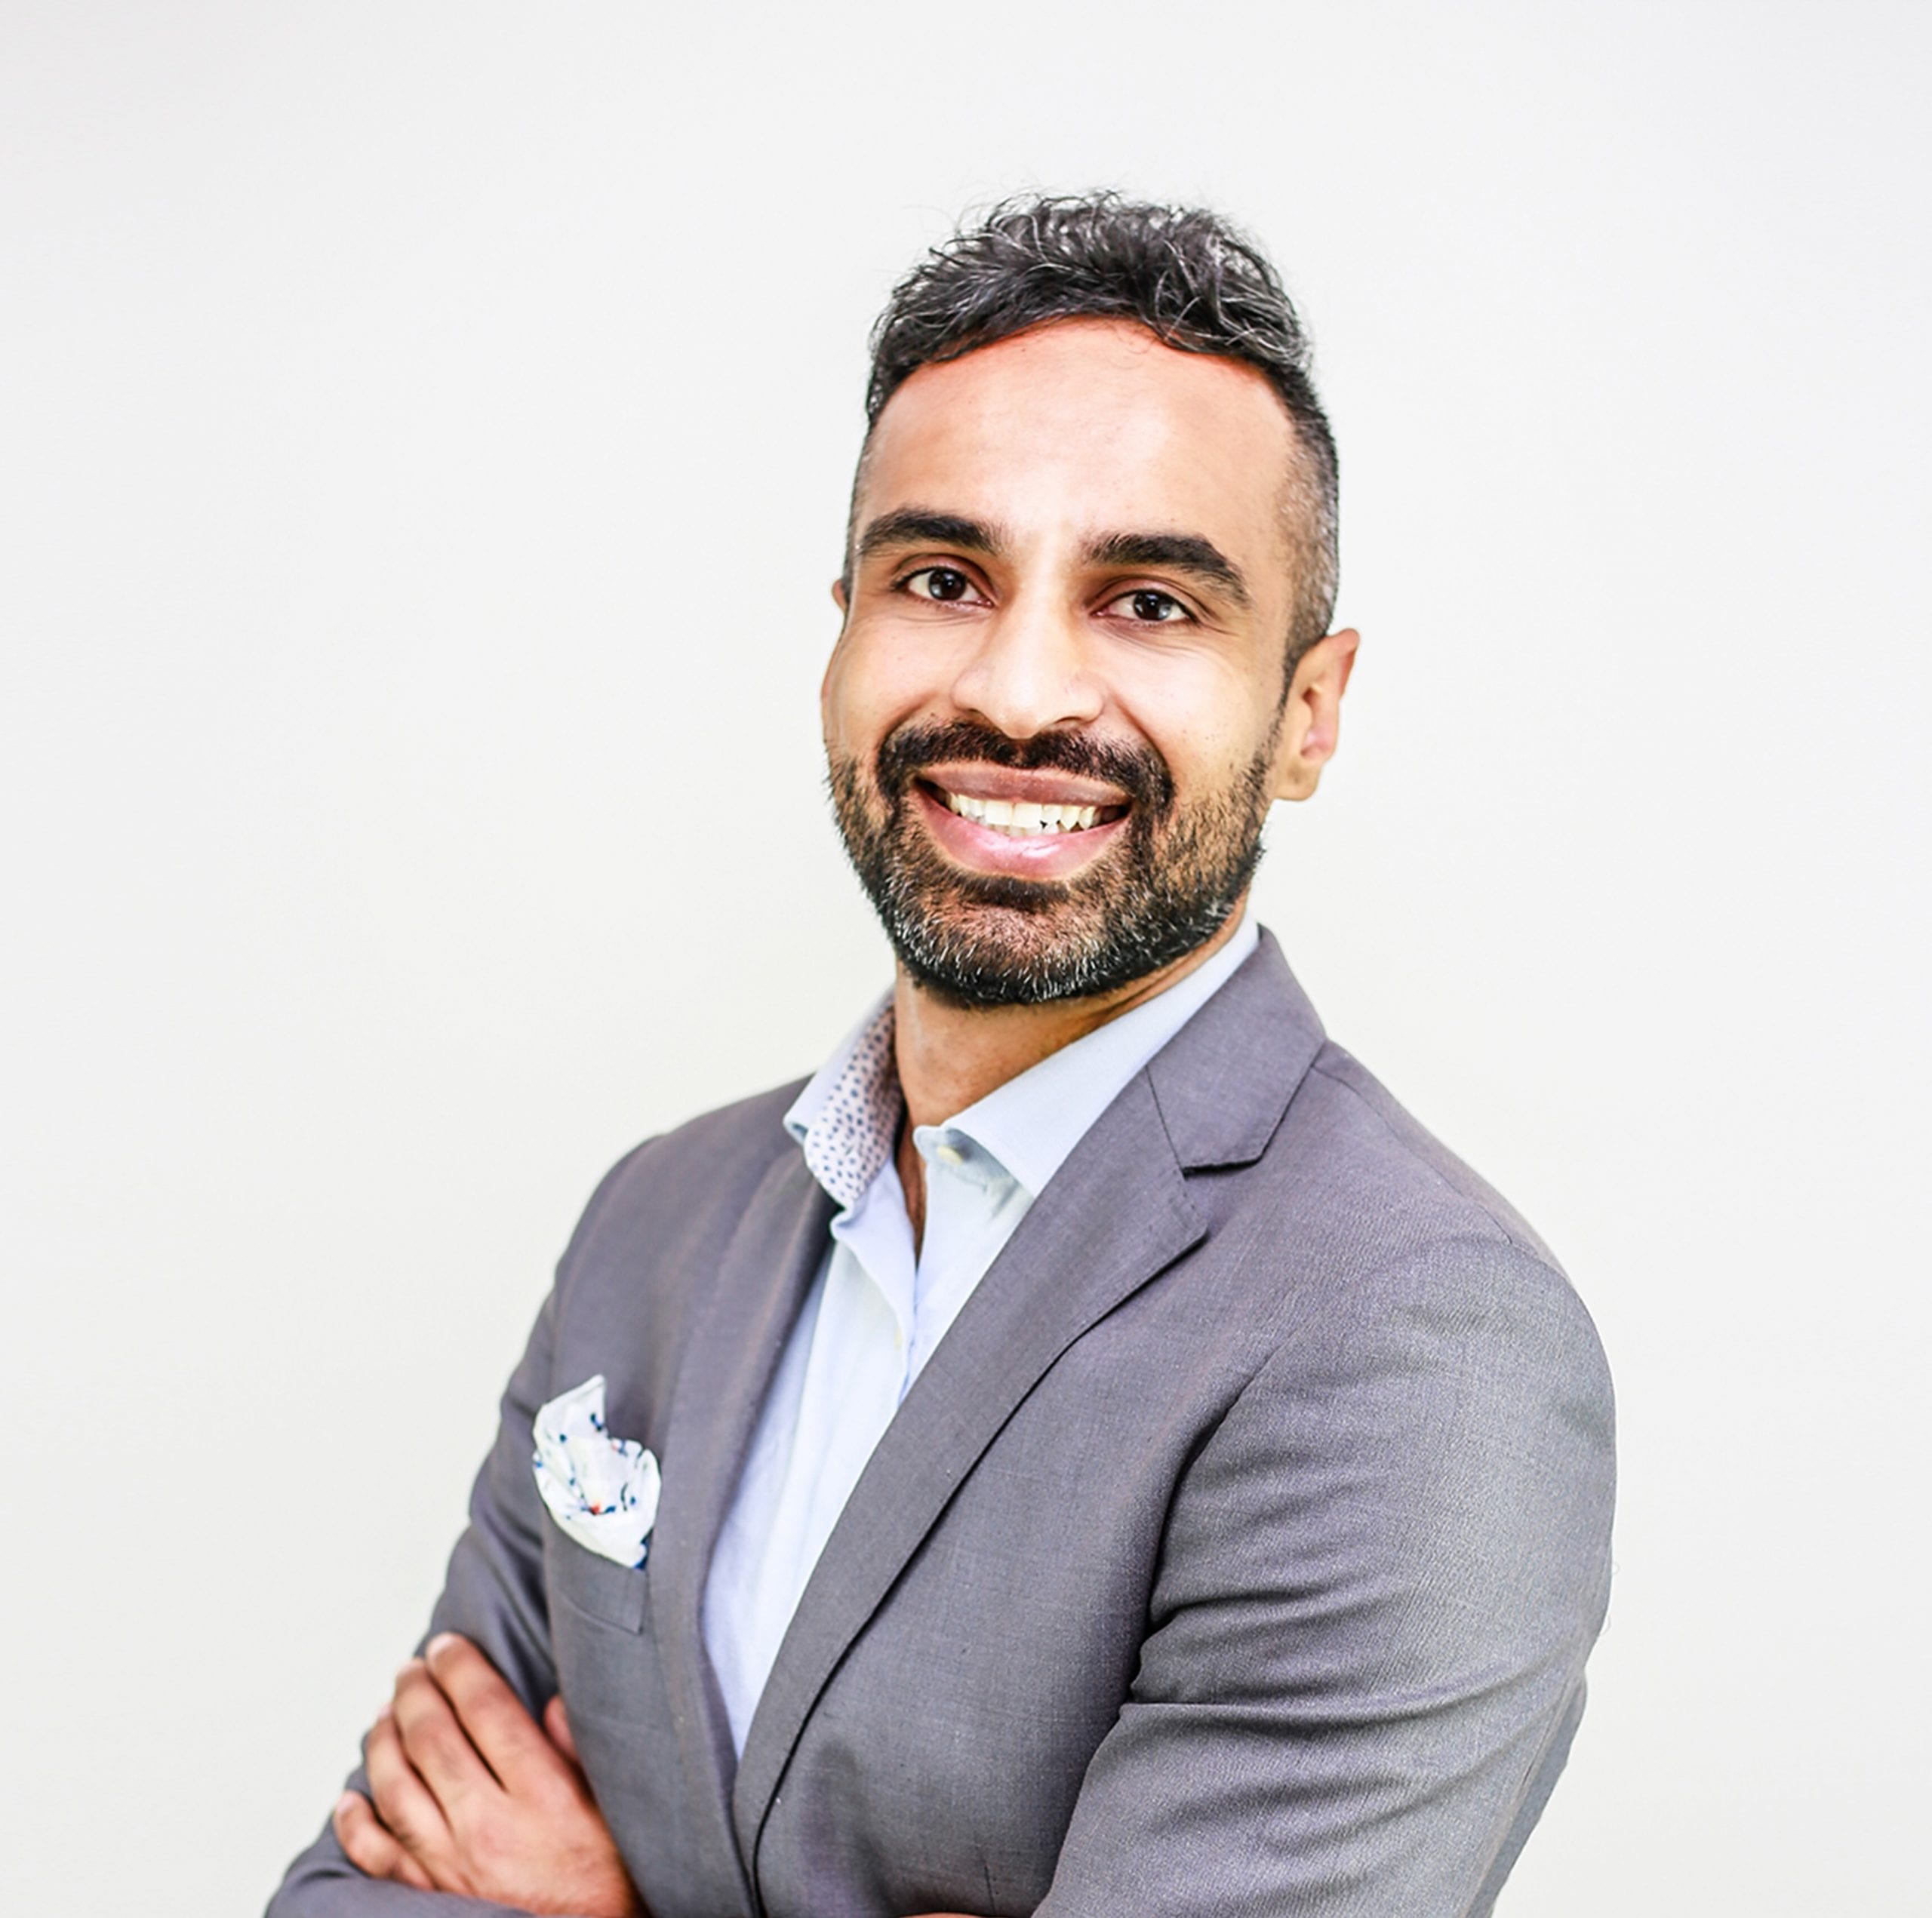 Ammar Malhi, head of client relations at SmartCrowd